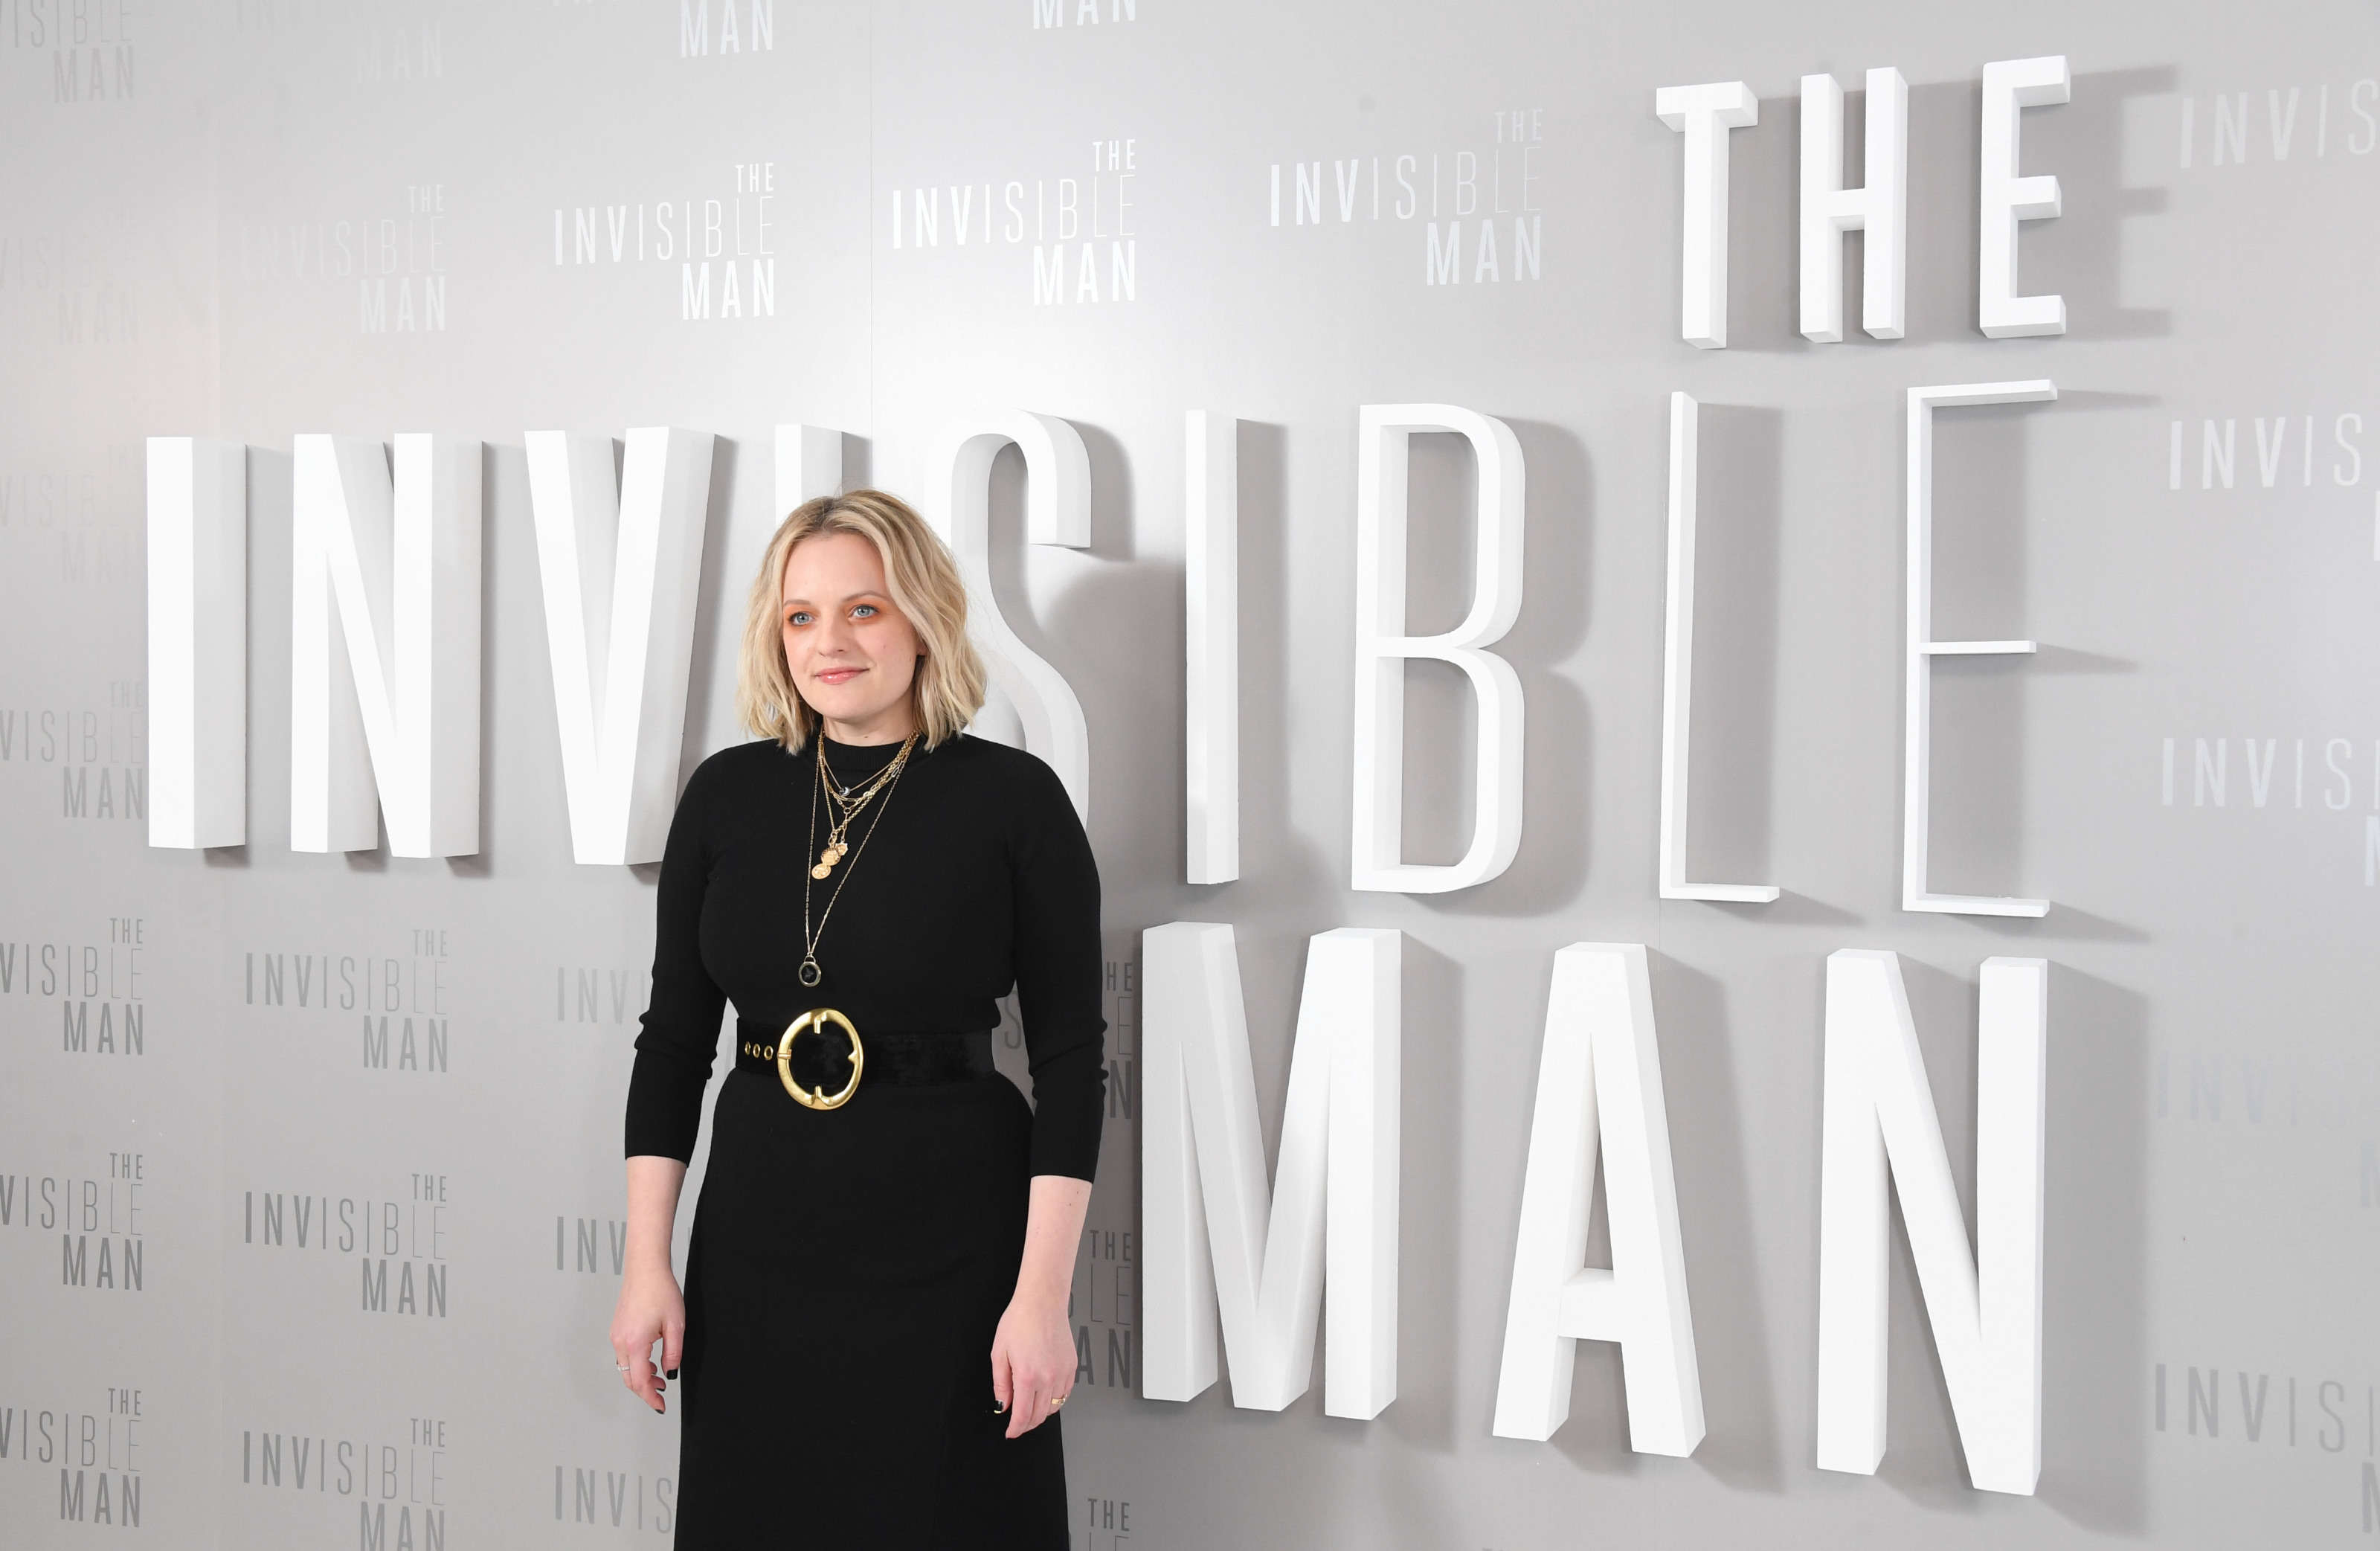 Early reactions for The Invisible Man are overwhelmingly positive